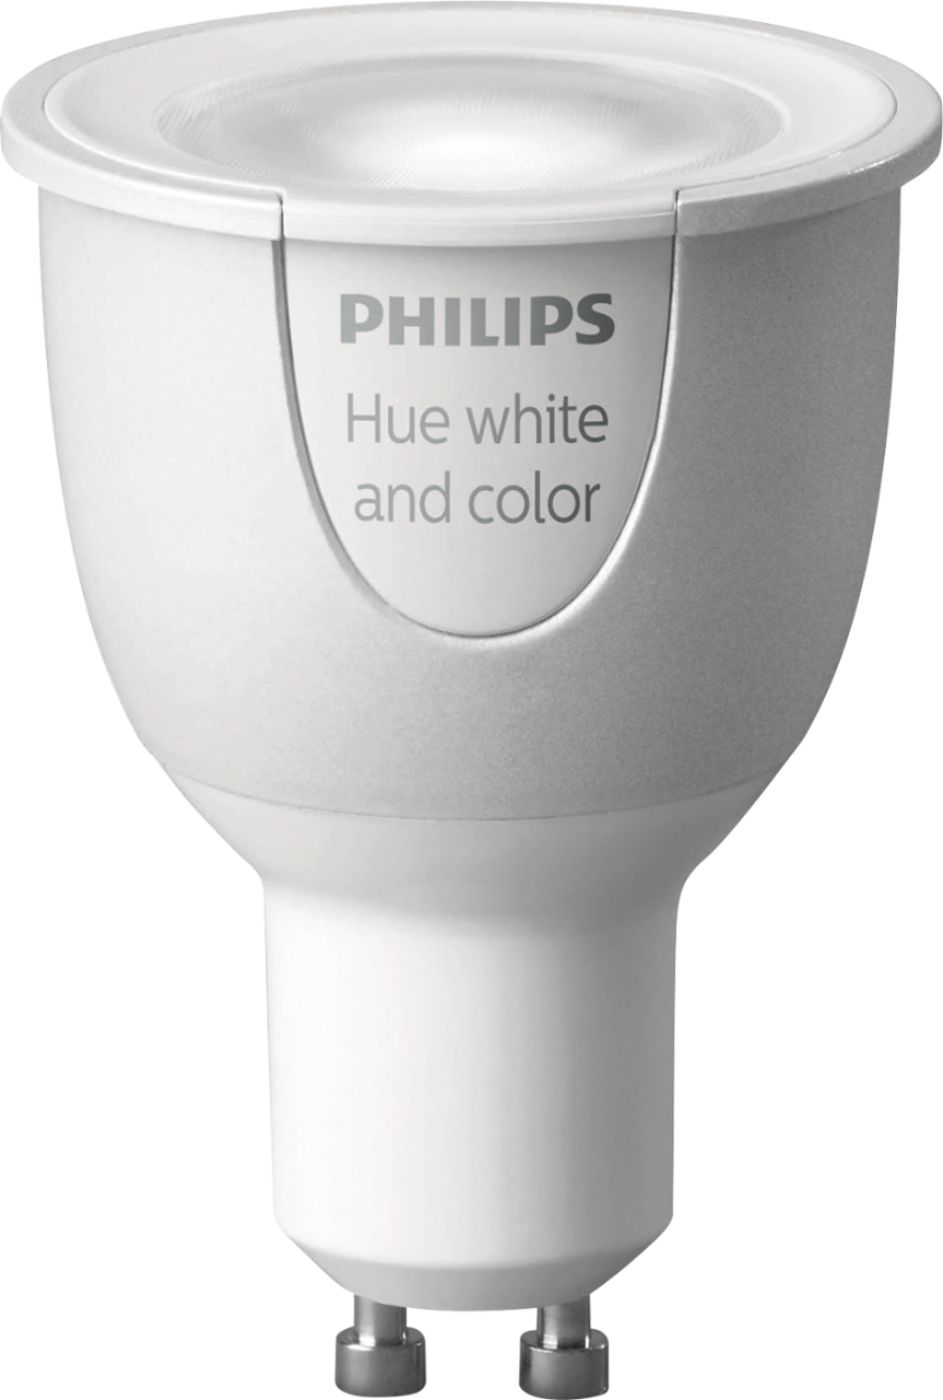 Hue G10 Philips Hue White And Color Ambiance Gu10 Wi Fi Smart Led Floodlight Bulb Multicolor